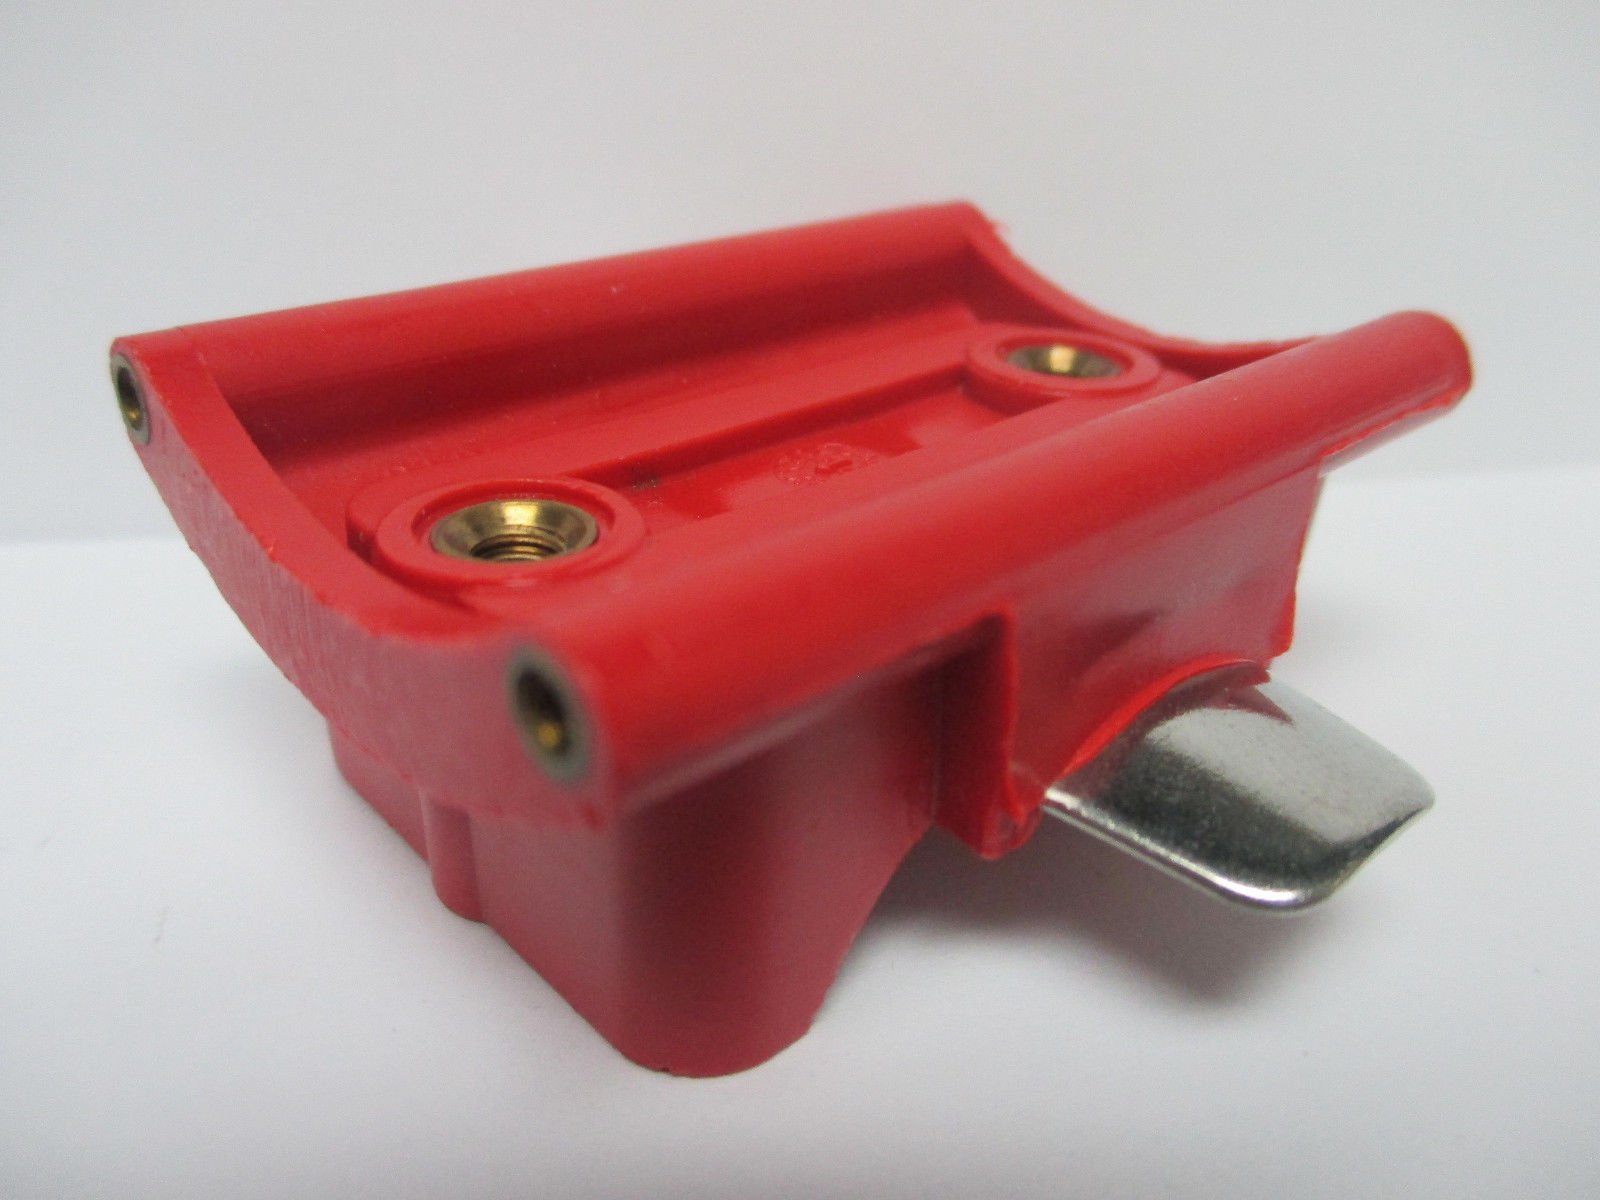 NEWELL CONVENTIONAL REEL PART - R 229 5 - Rod Stand Reel Seat Threaded